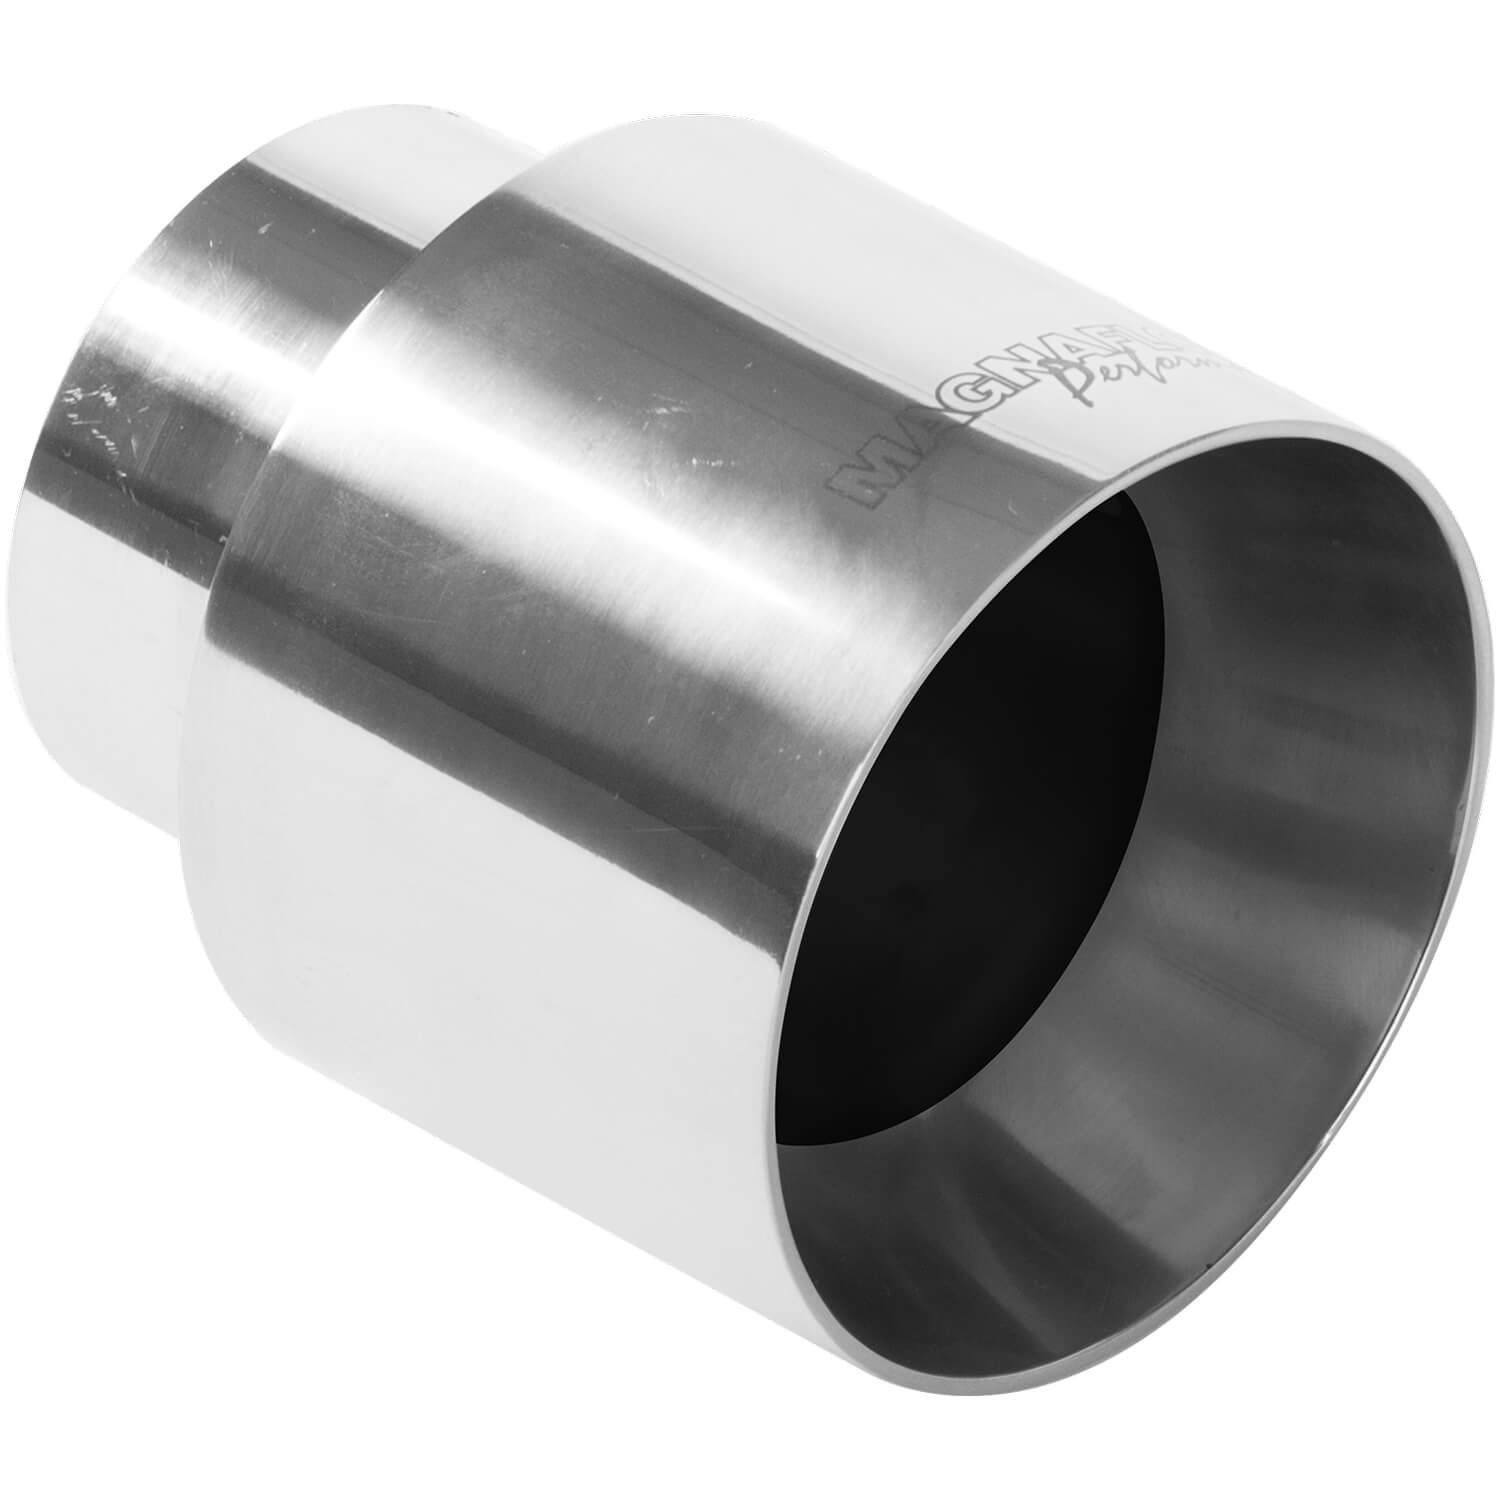 Magnaflow 35124 - Magnaflow Polished Stainless Steel Weld-On Exhaust Tips